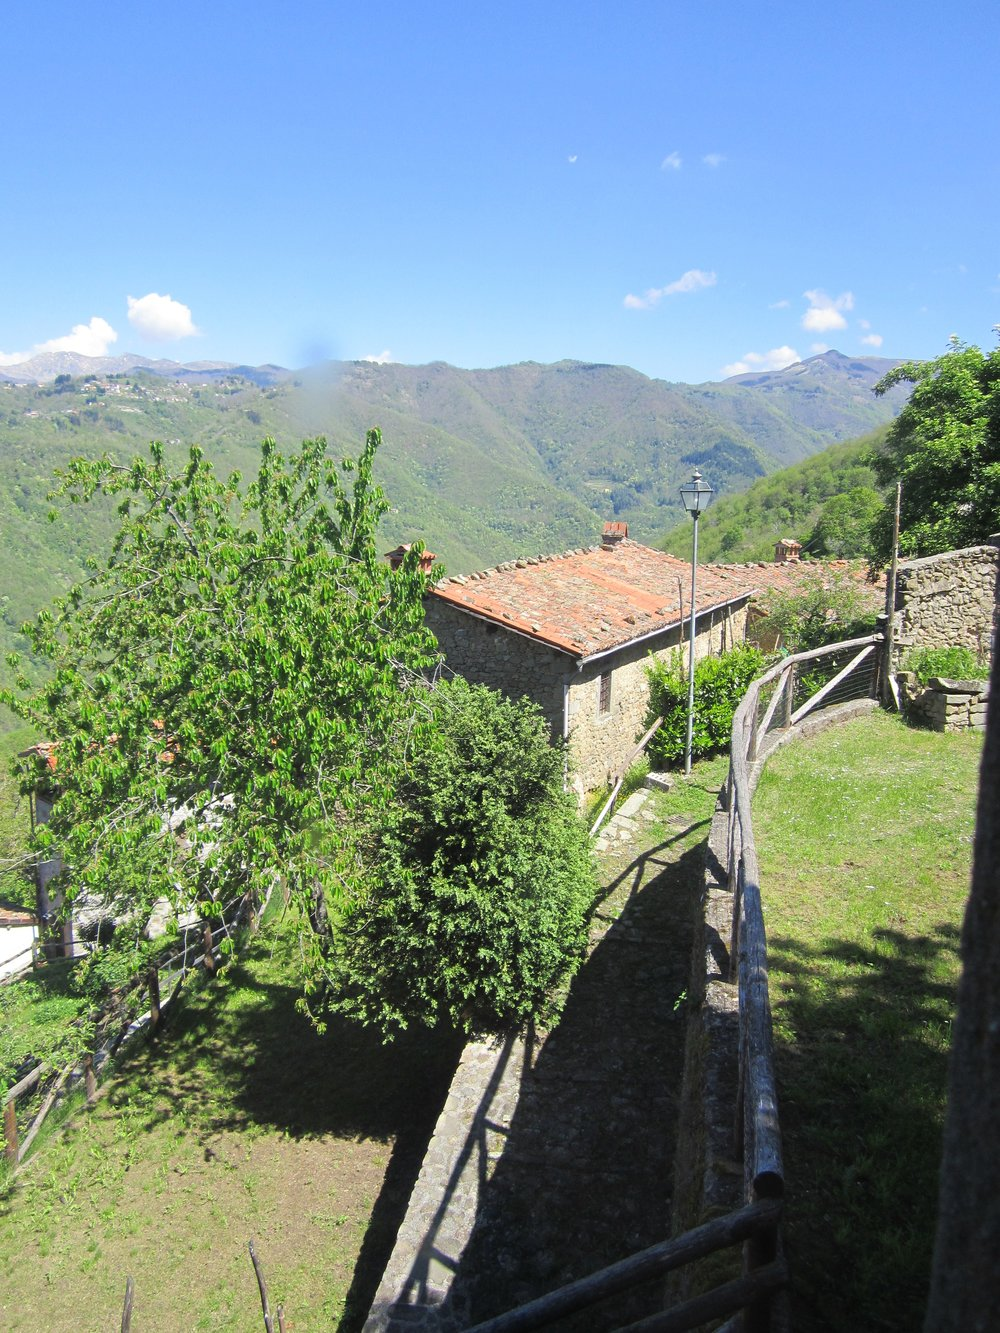 The green hillsides of the Garfagnana in spring as seen from the town of Sillico, 2012.